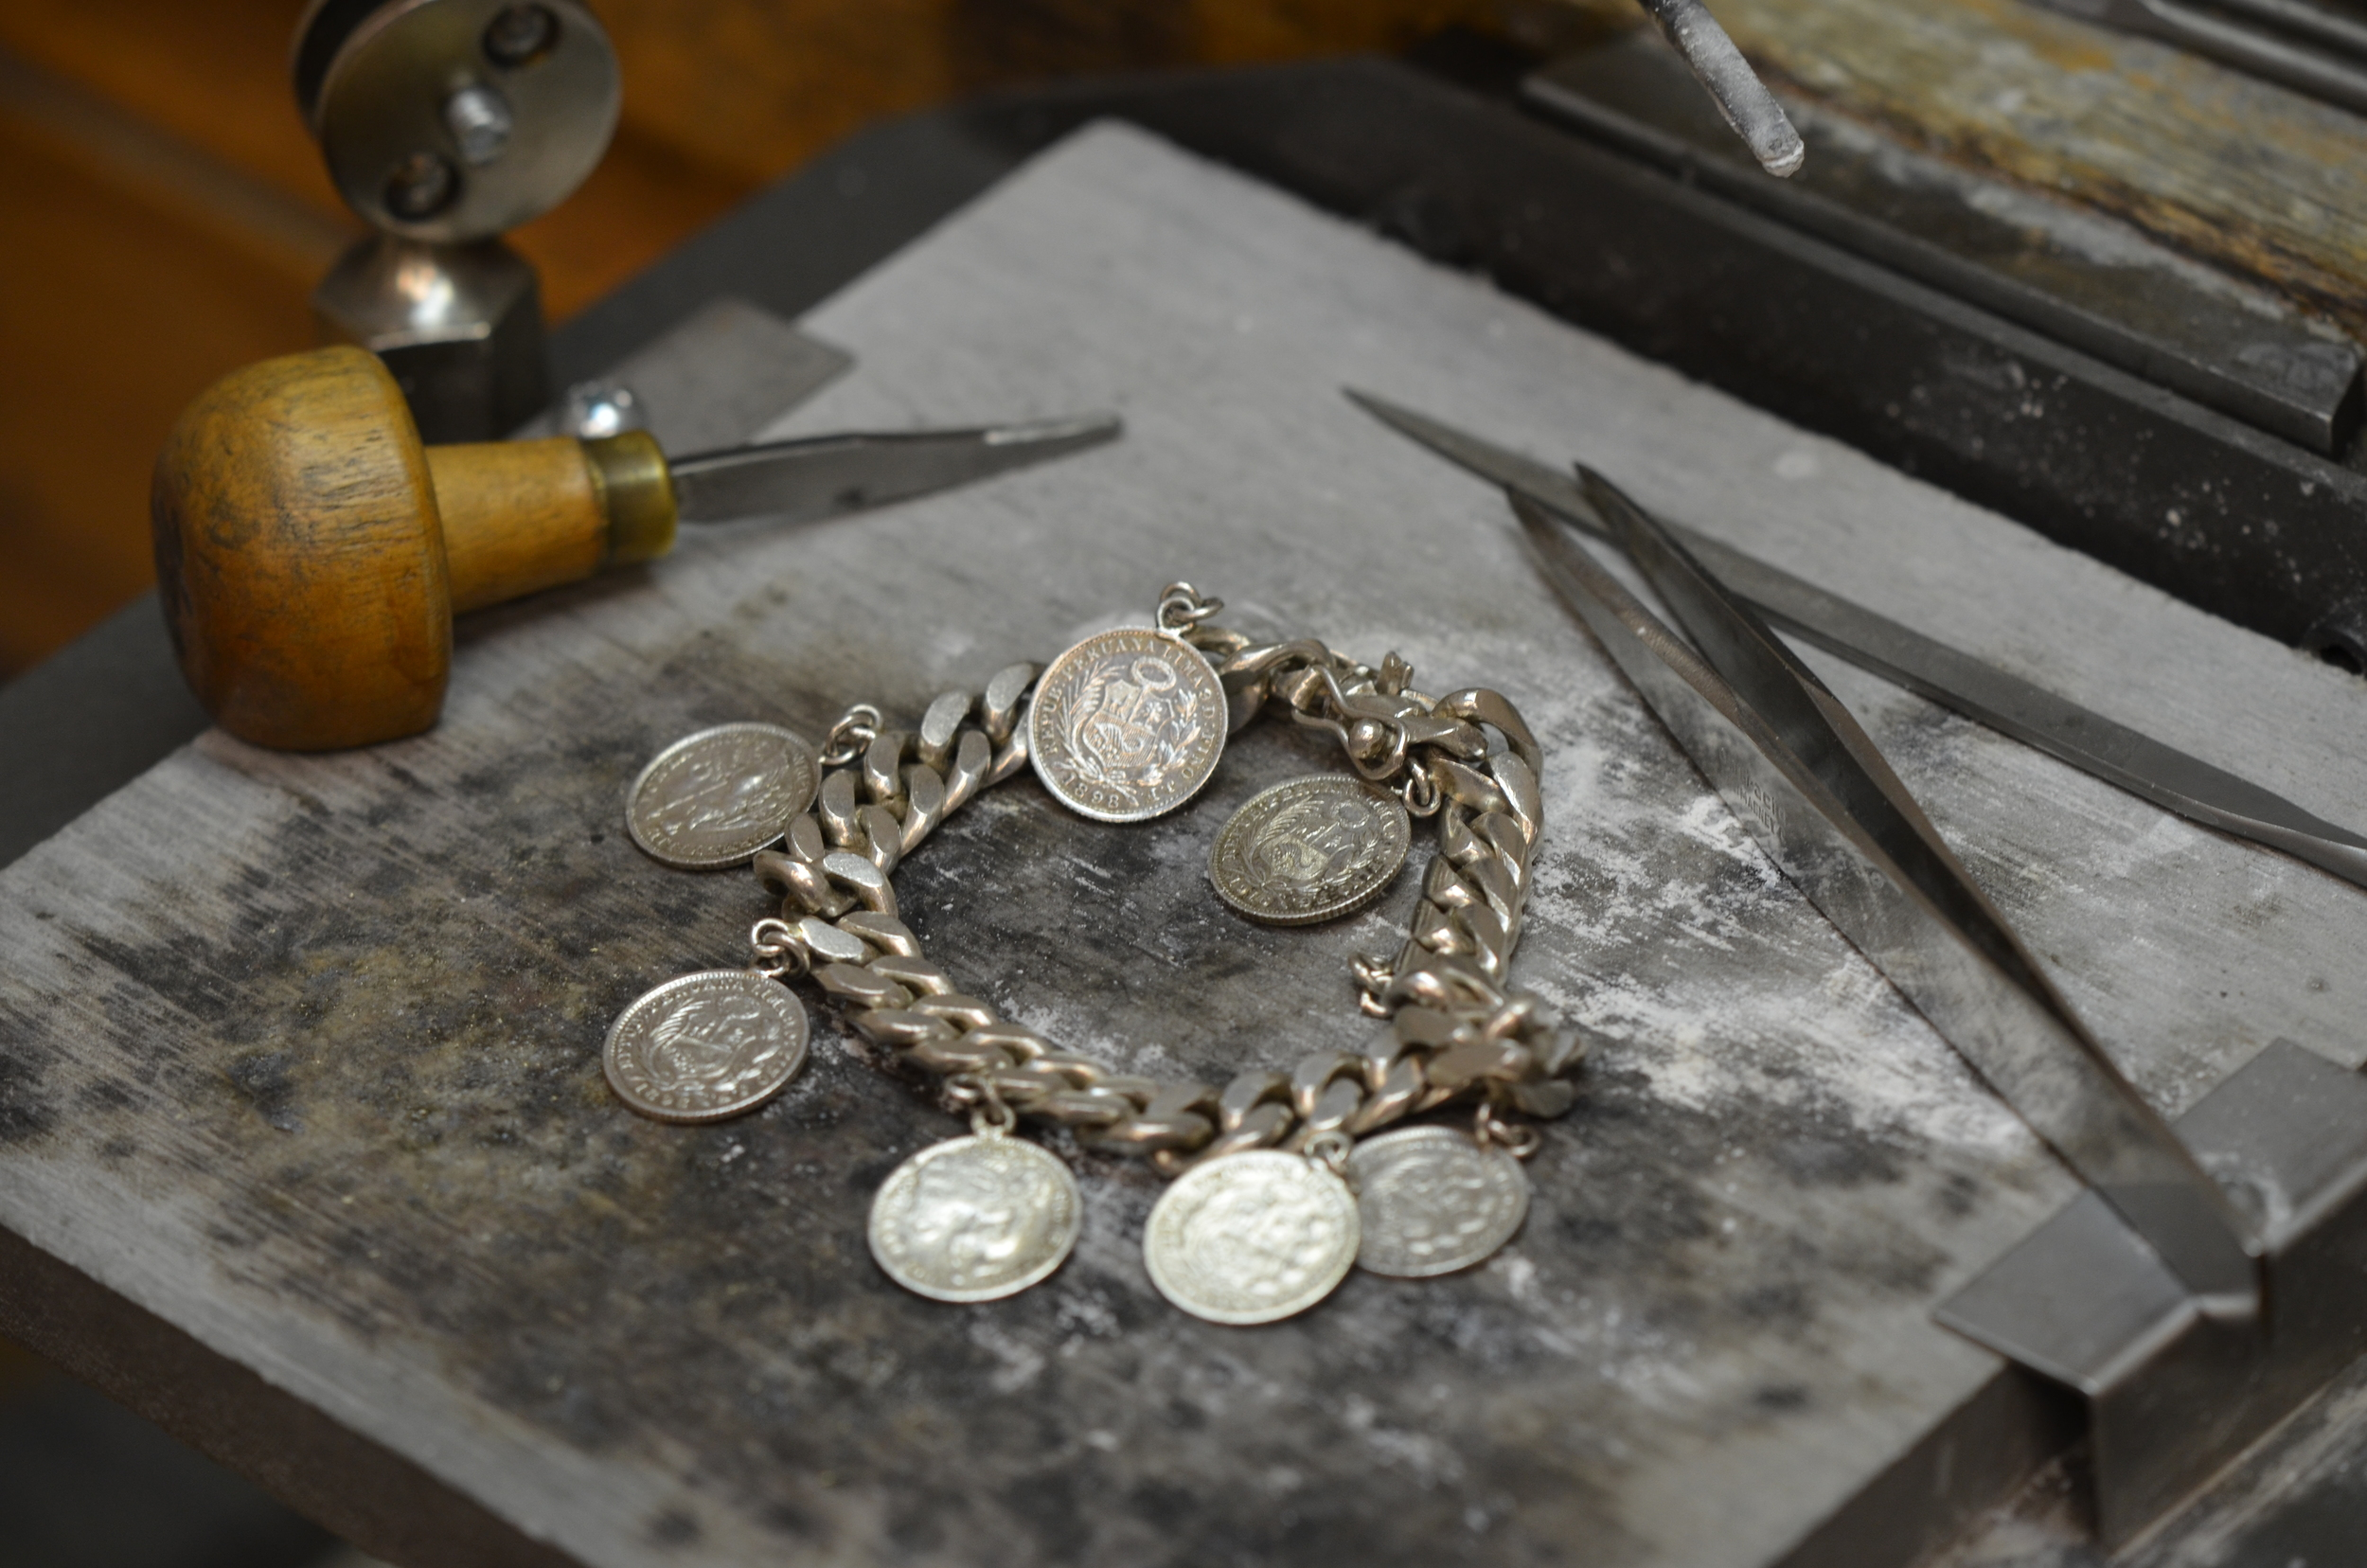 Sterling Silver bracelet with coins.